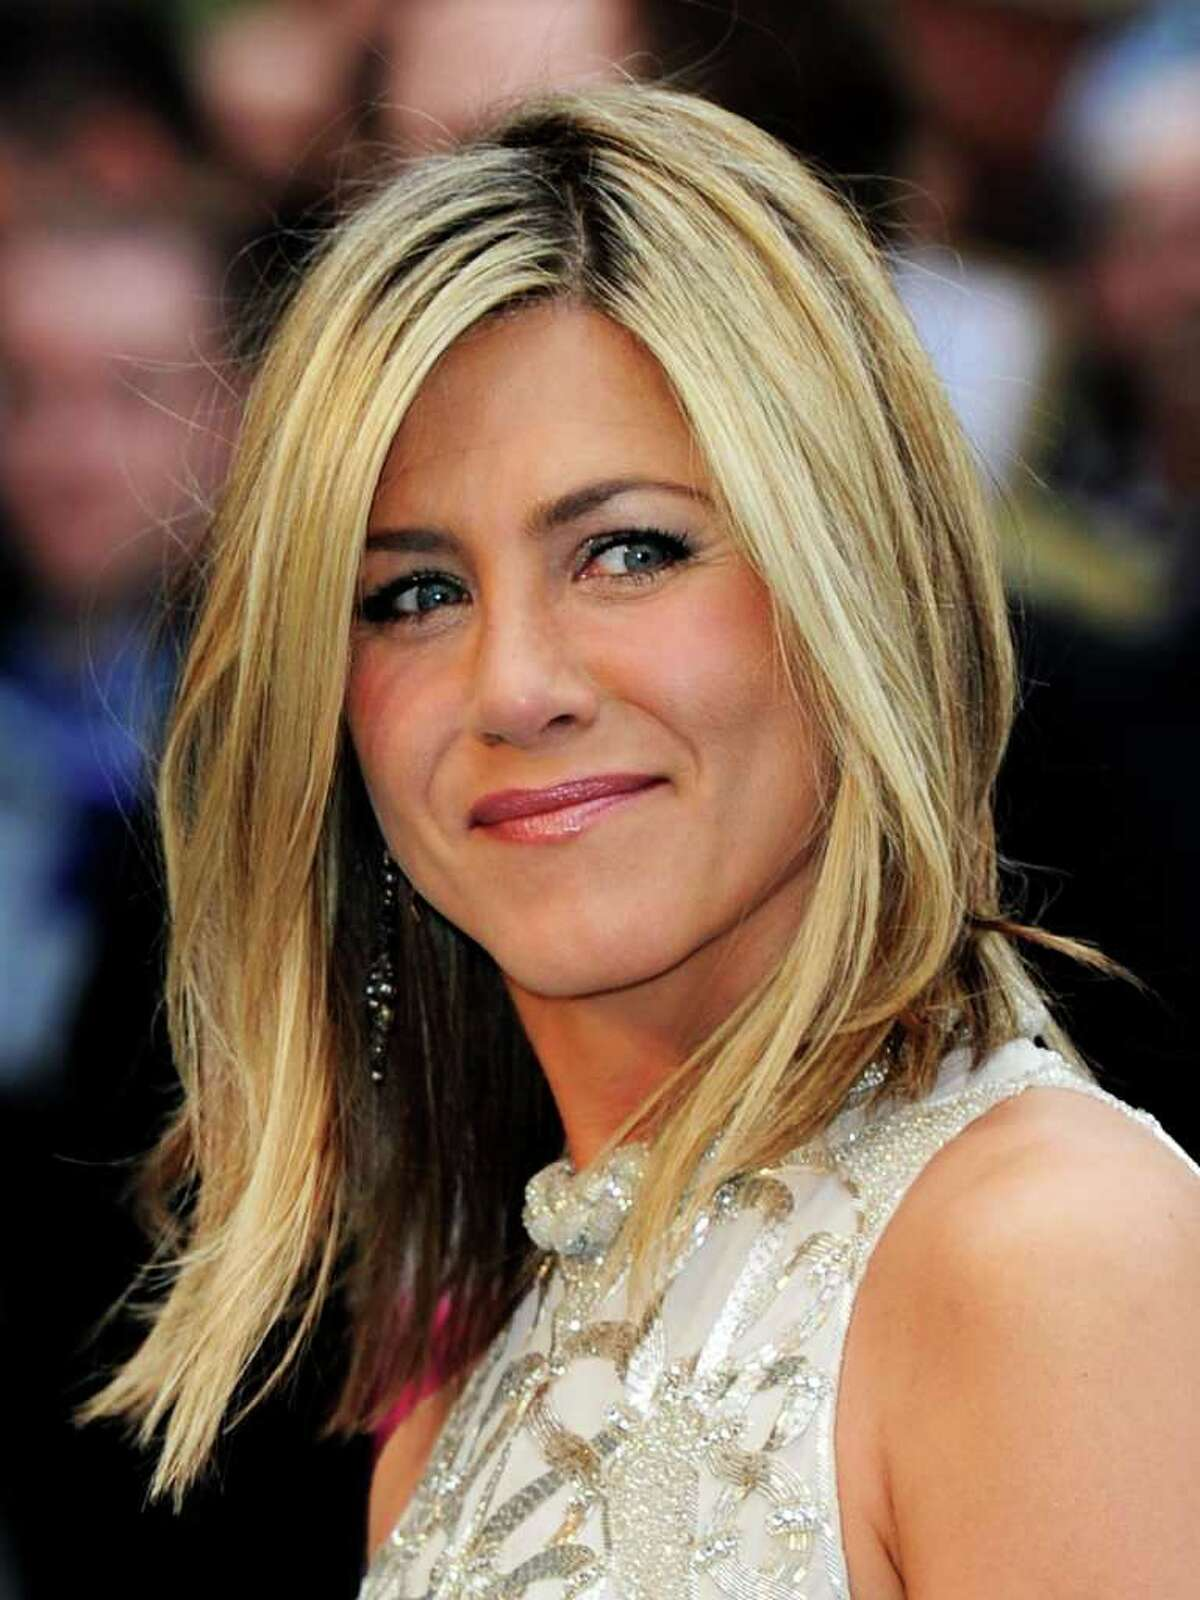 """Actress Jennifer Aniston attends the UK film premiere of """"Horrible Bosses"""" at BFI Southbank in London, England."""